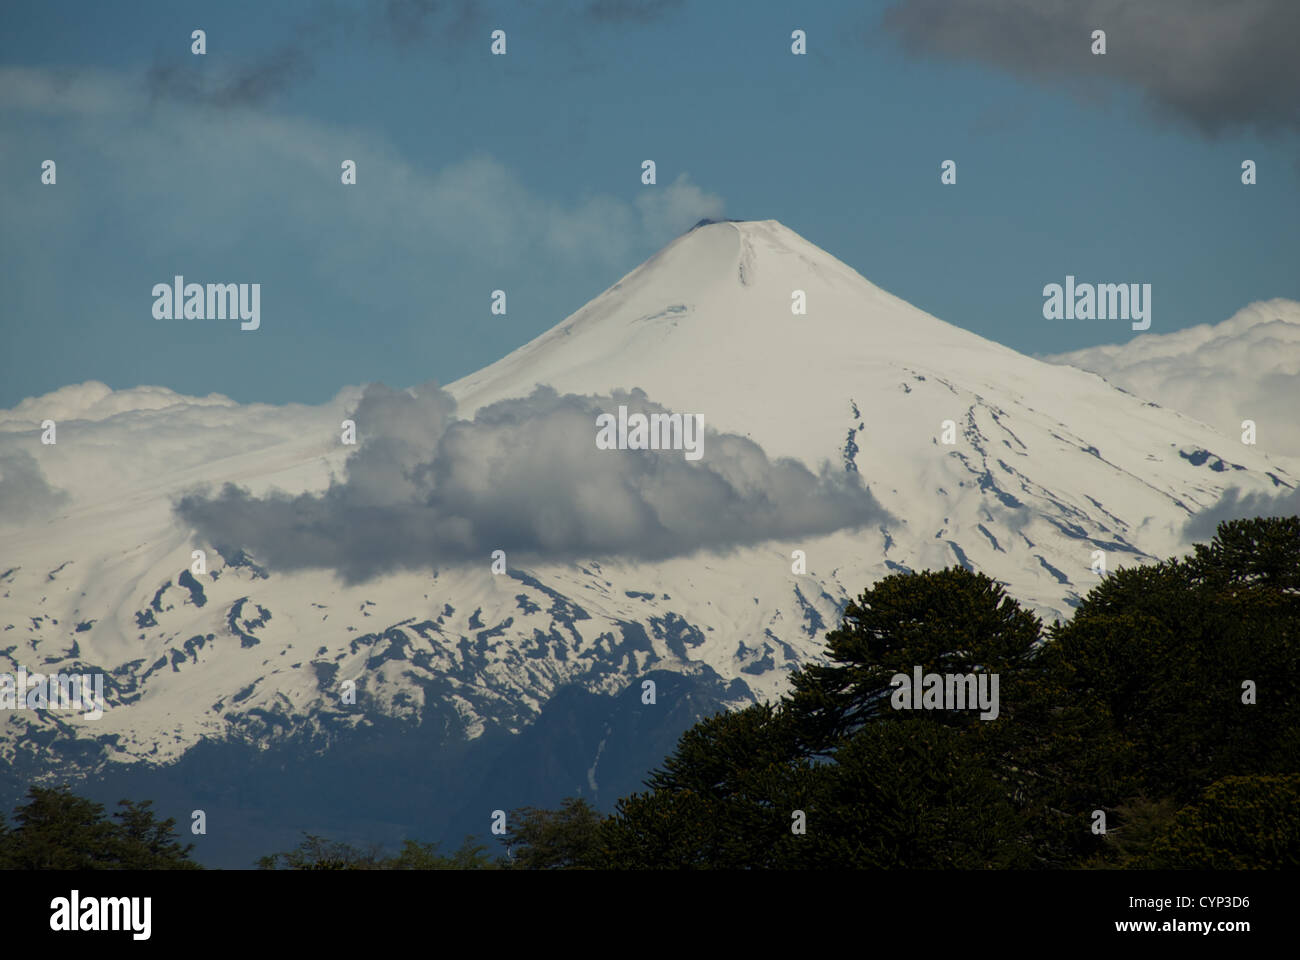 Volcan Villarrica and fumarole, Patagonia, Chile - Stock Image